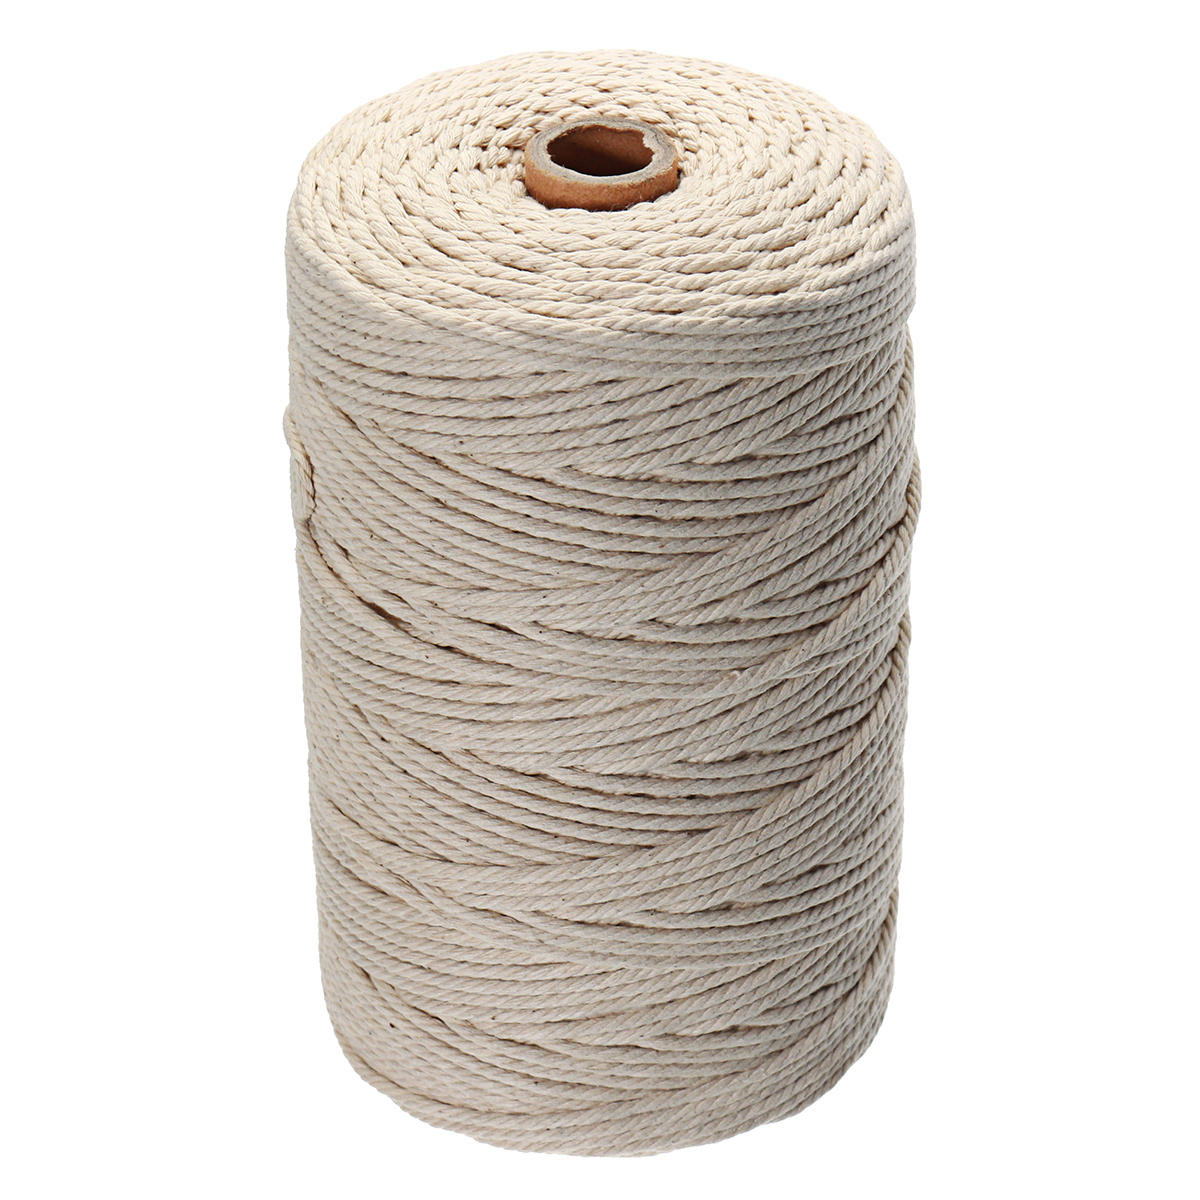 hight resolution of 5pcs 200mx3mm natural beige cotton twisted cord rope braided wire diy craft macrame string cod